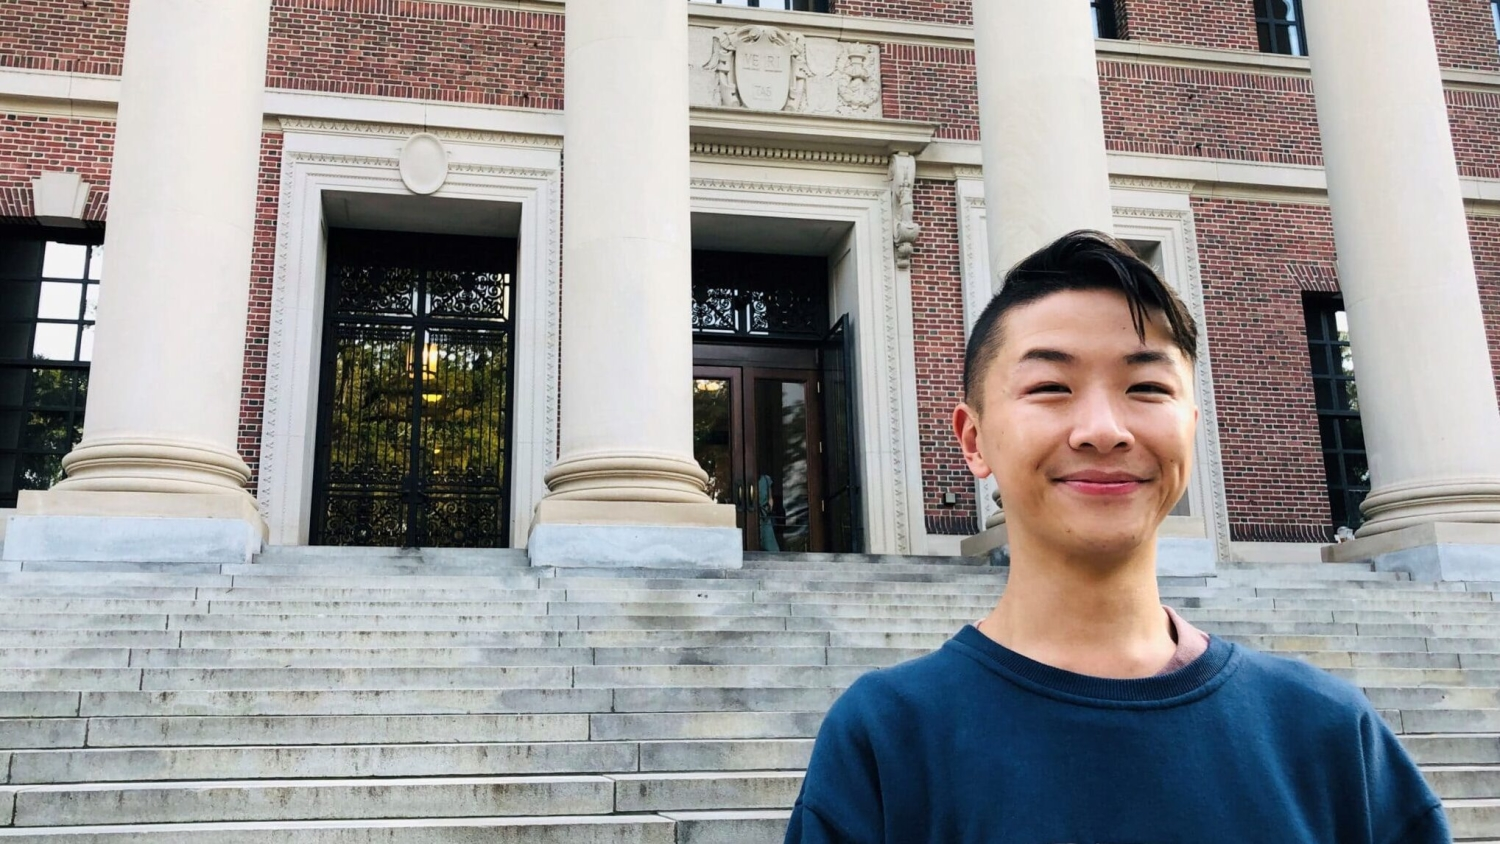 Eugene Cheung stands in front of a building.